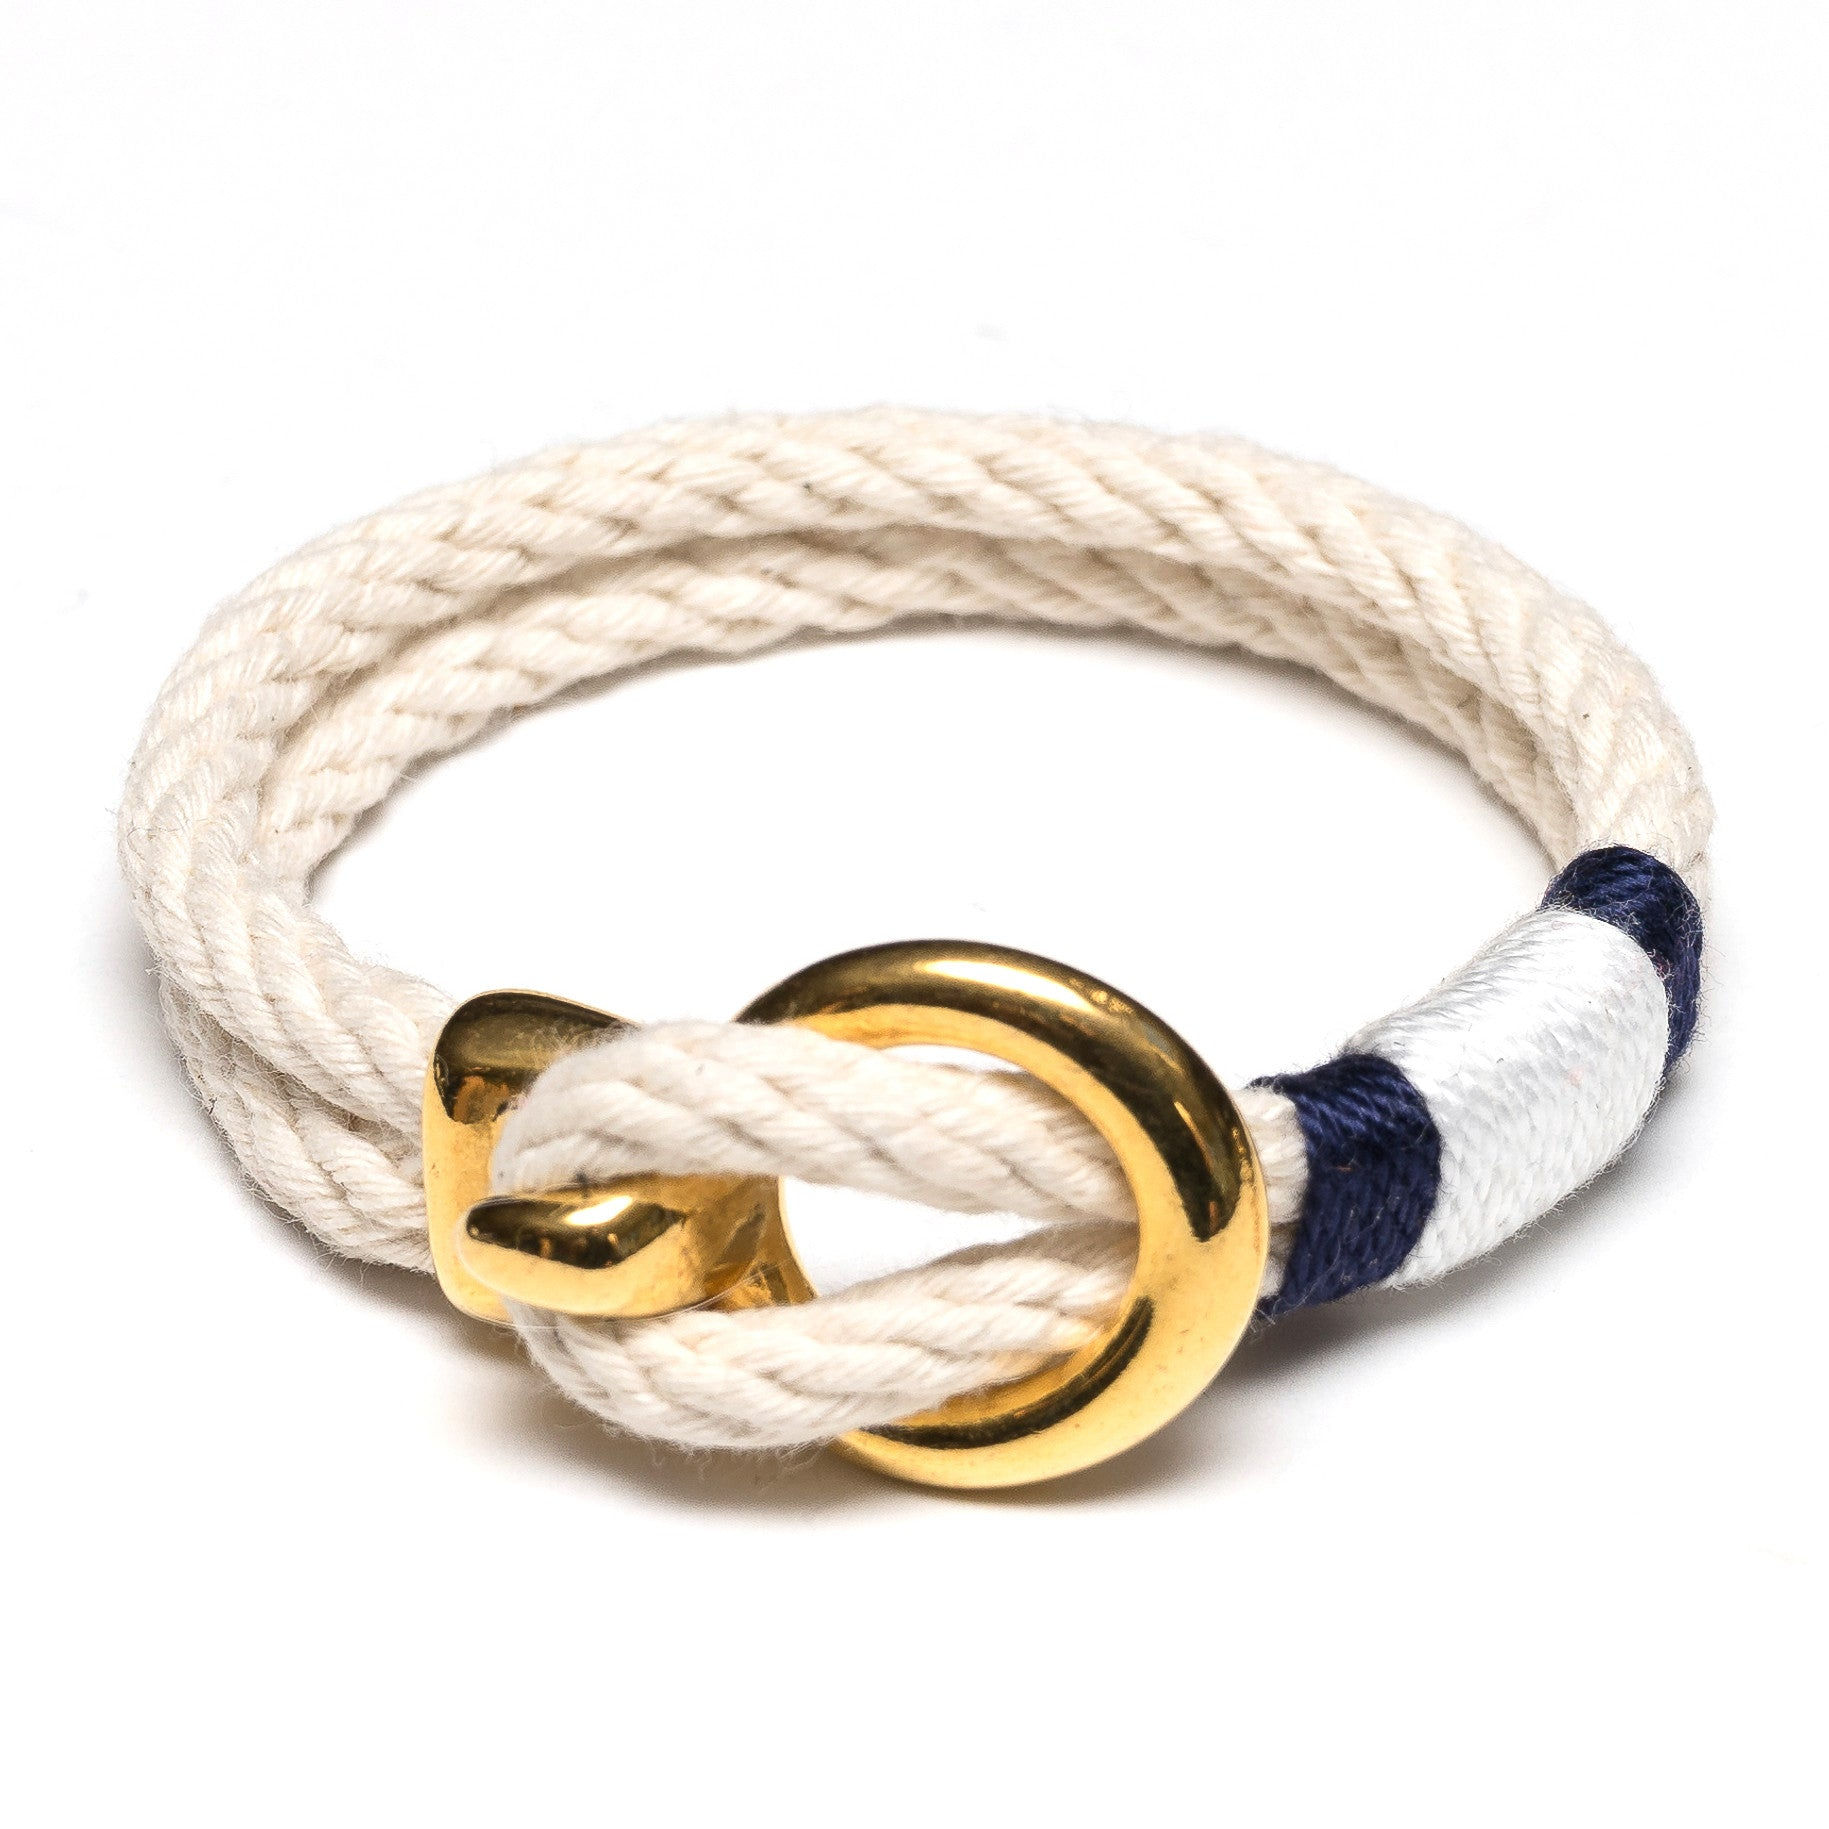 sterling heavy rope turk online catalog s cod index cape cable jewelry silver nautical braid head gold bracelet